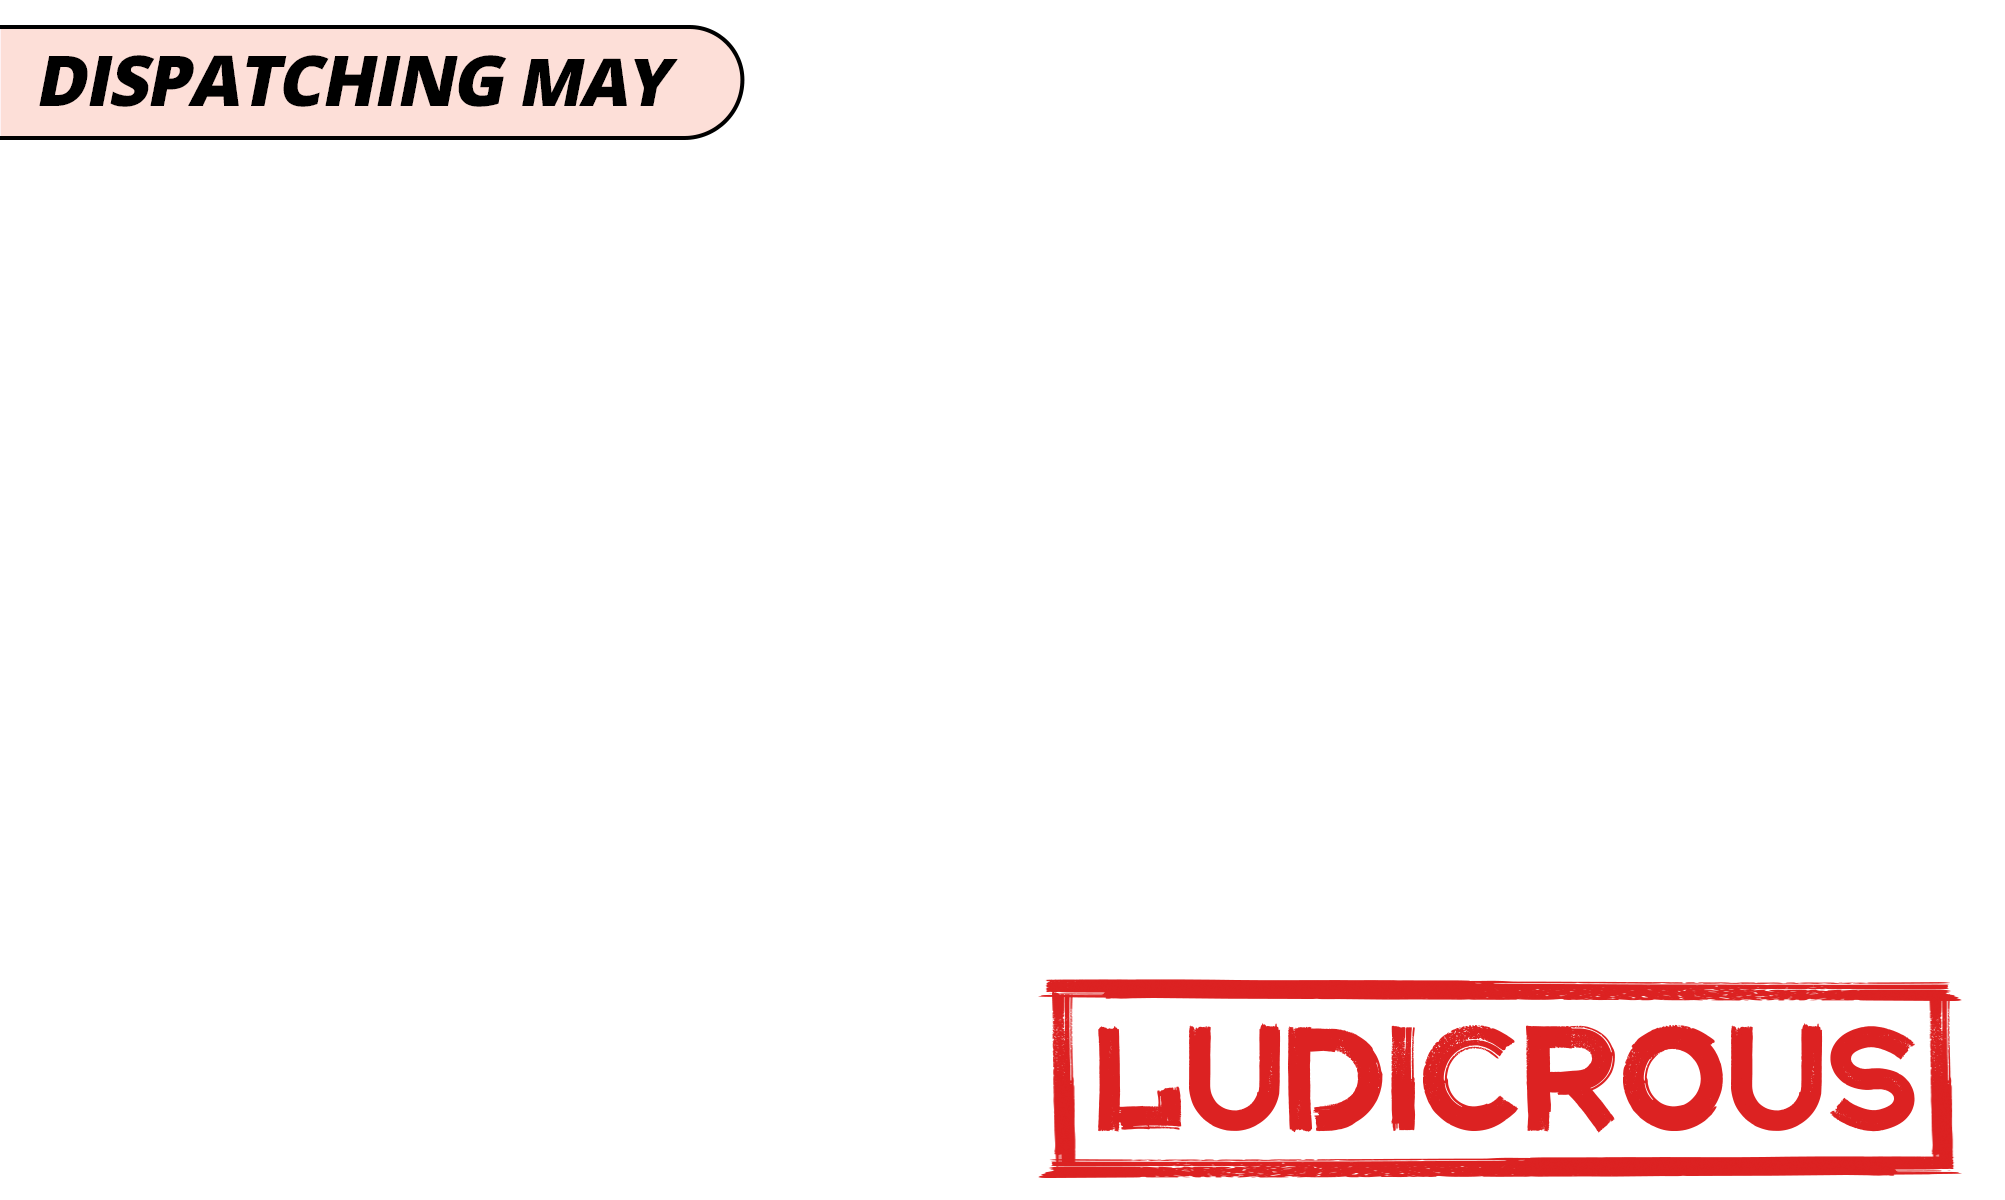 Dispatching may   ludicrous